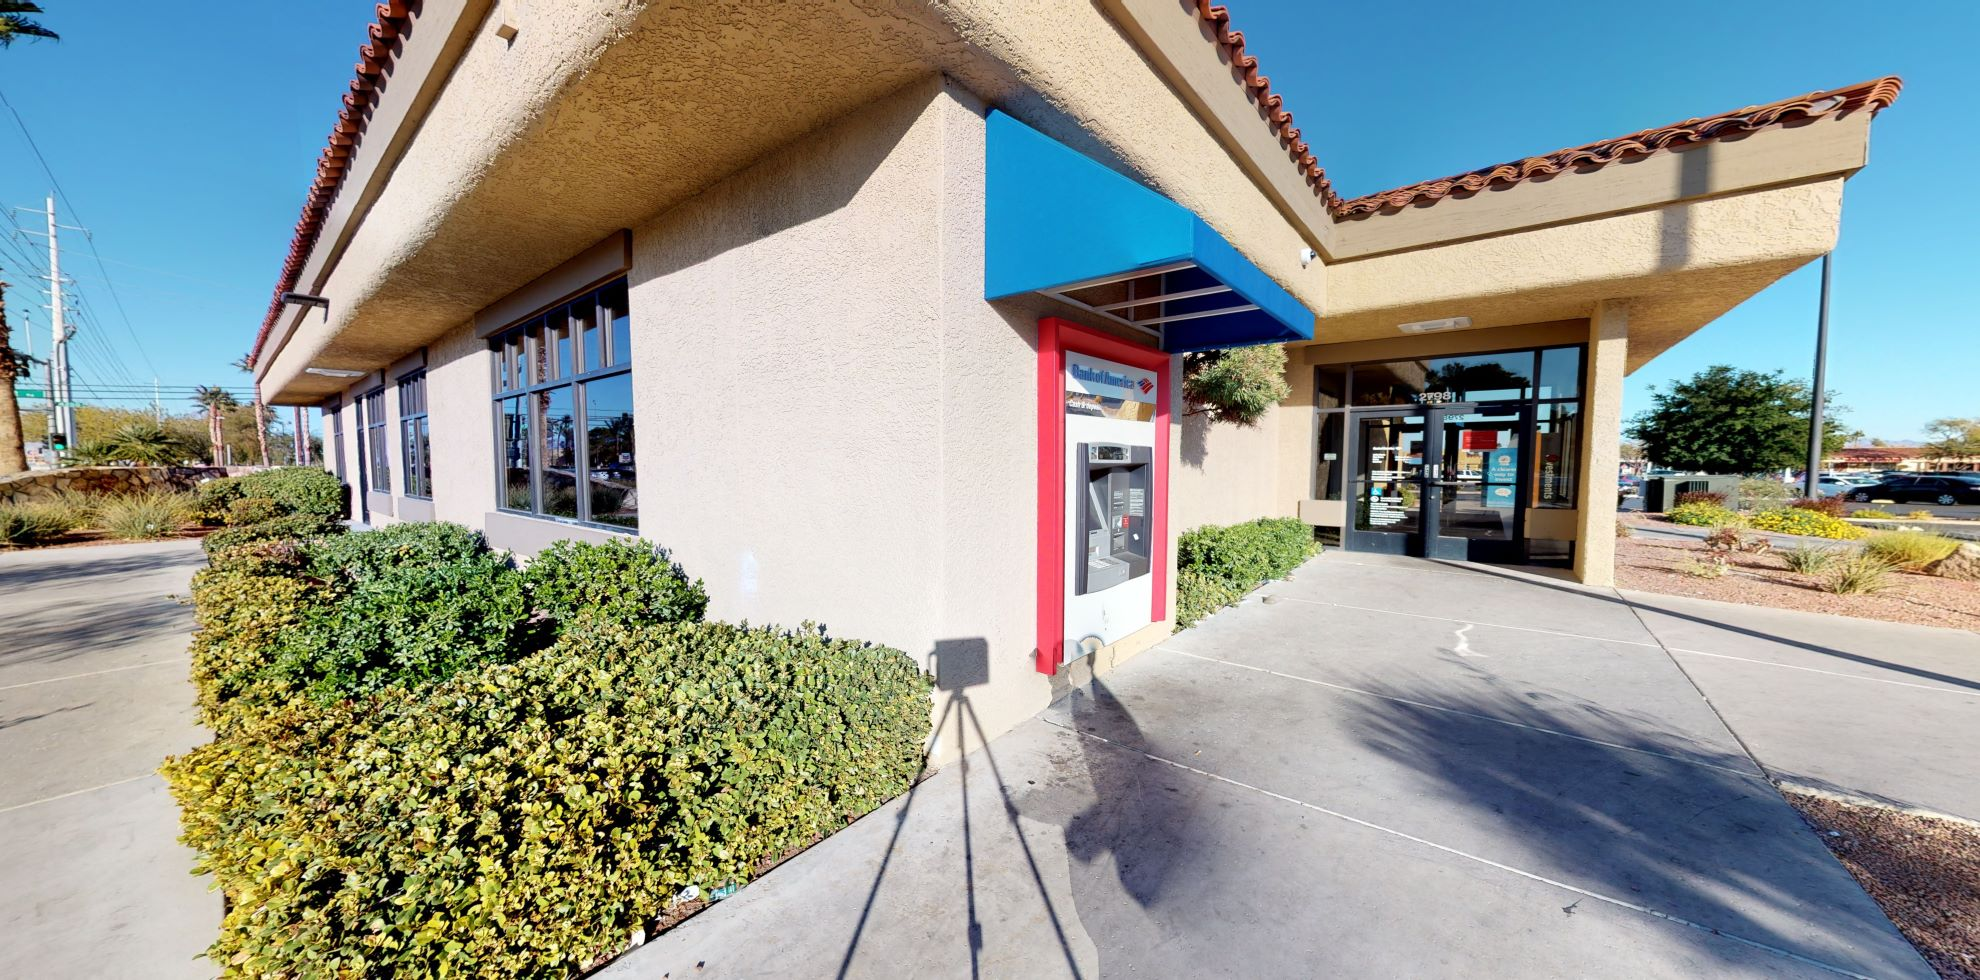 Bank of America financial center with drive-thru ATM | 2798 N Green Valley Pkwy, Henderson, NV 89014